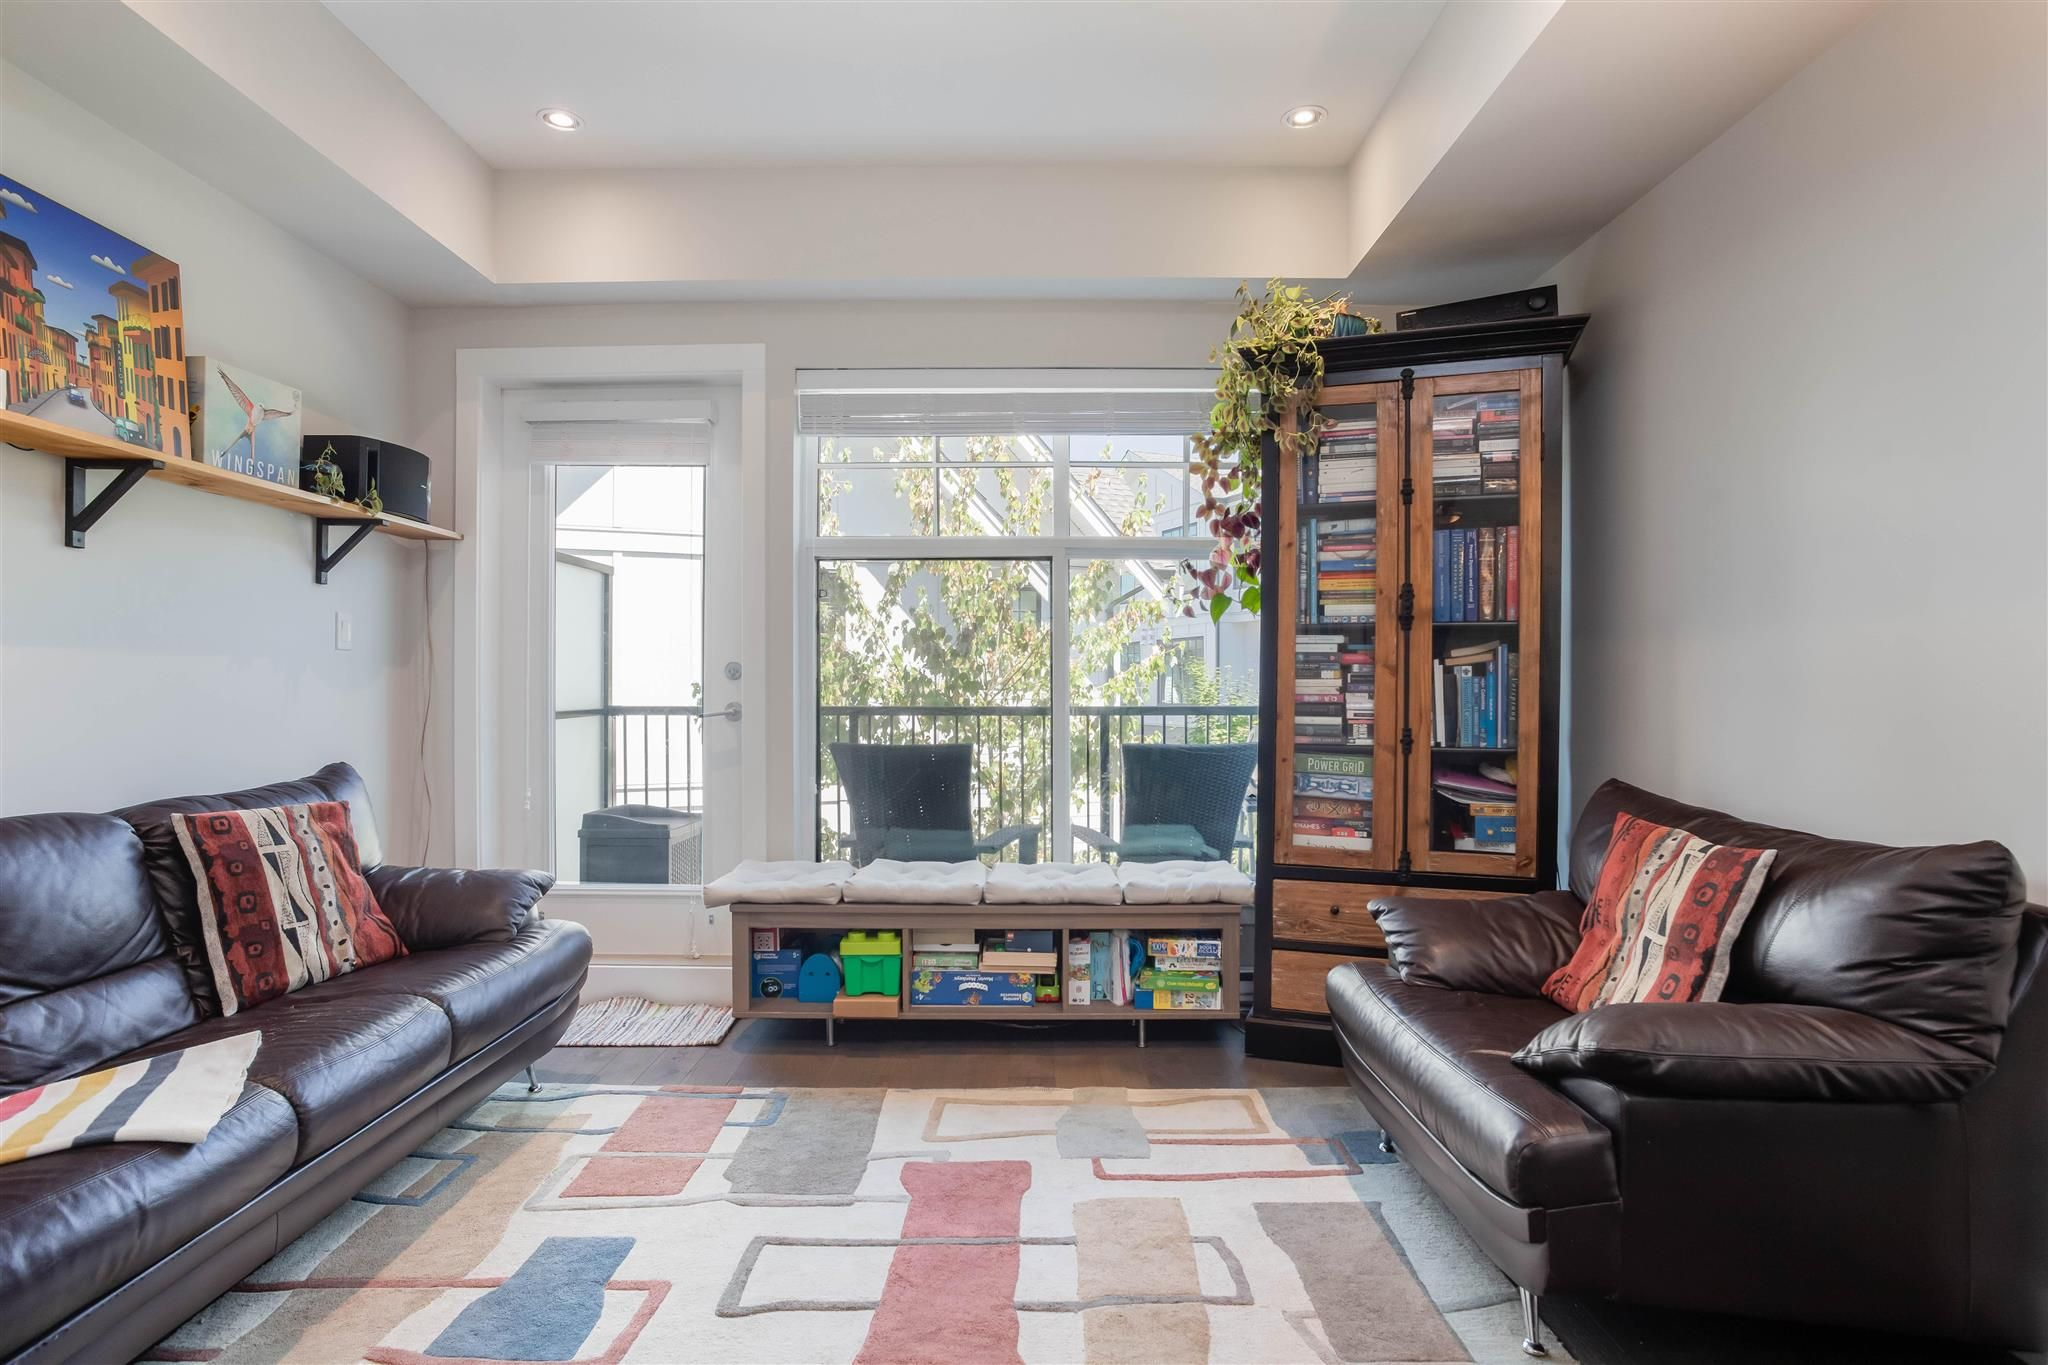 """Main Photo: 7 5152 CANADA Way in Burnaby: Burnaby Lake Townhouse for sale in """"SAVILE ROW"""" (Burnaby South)  : MLS®# R2599311"""